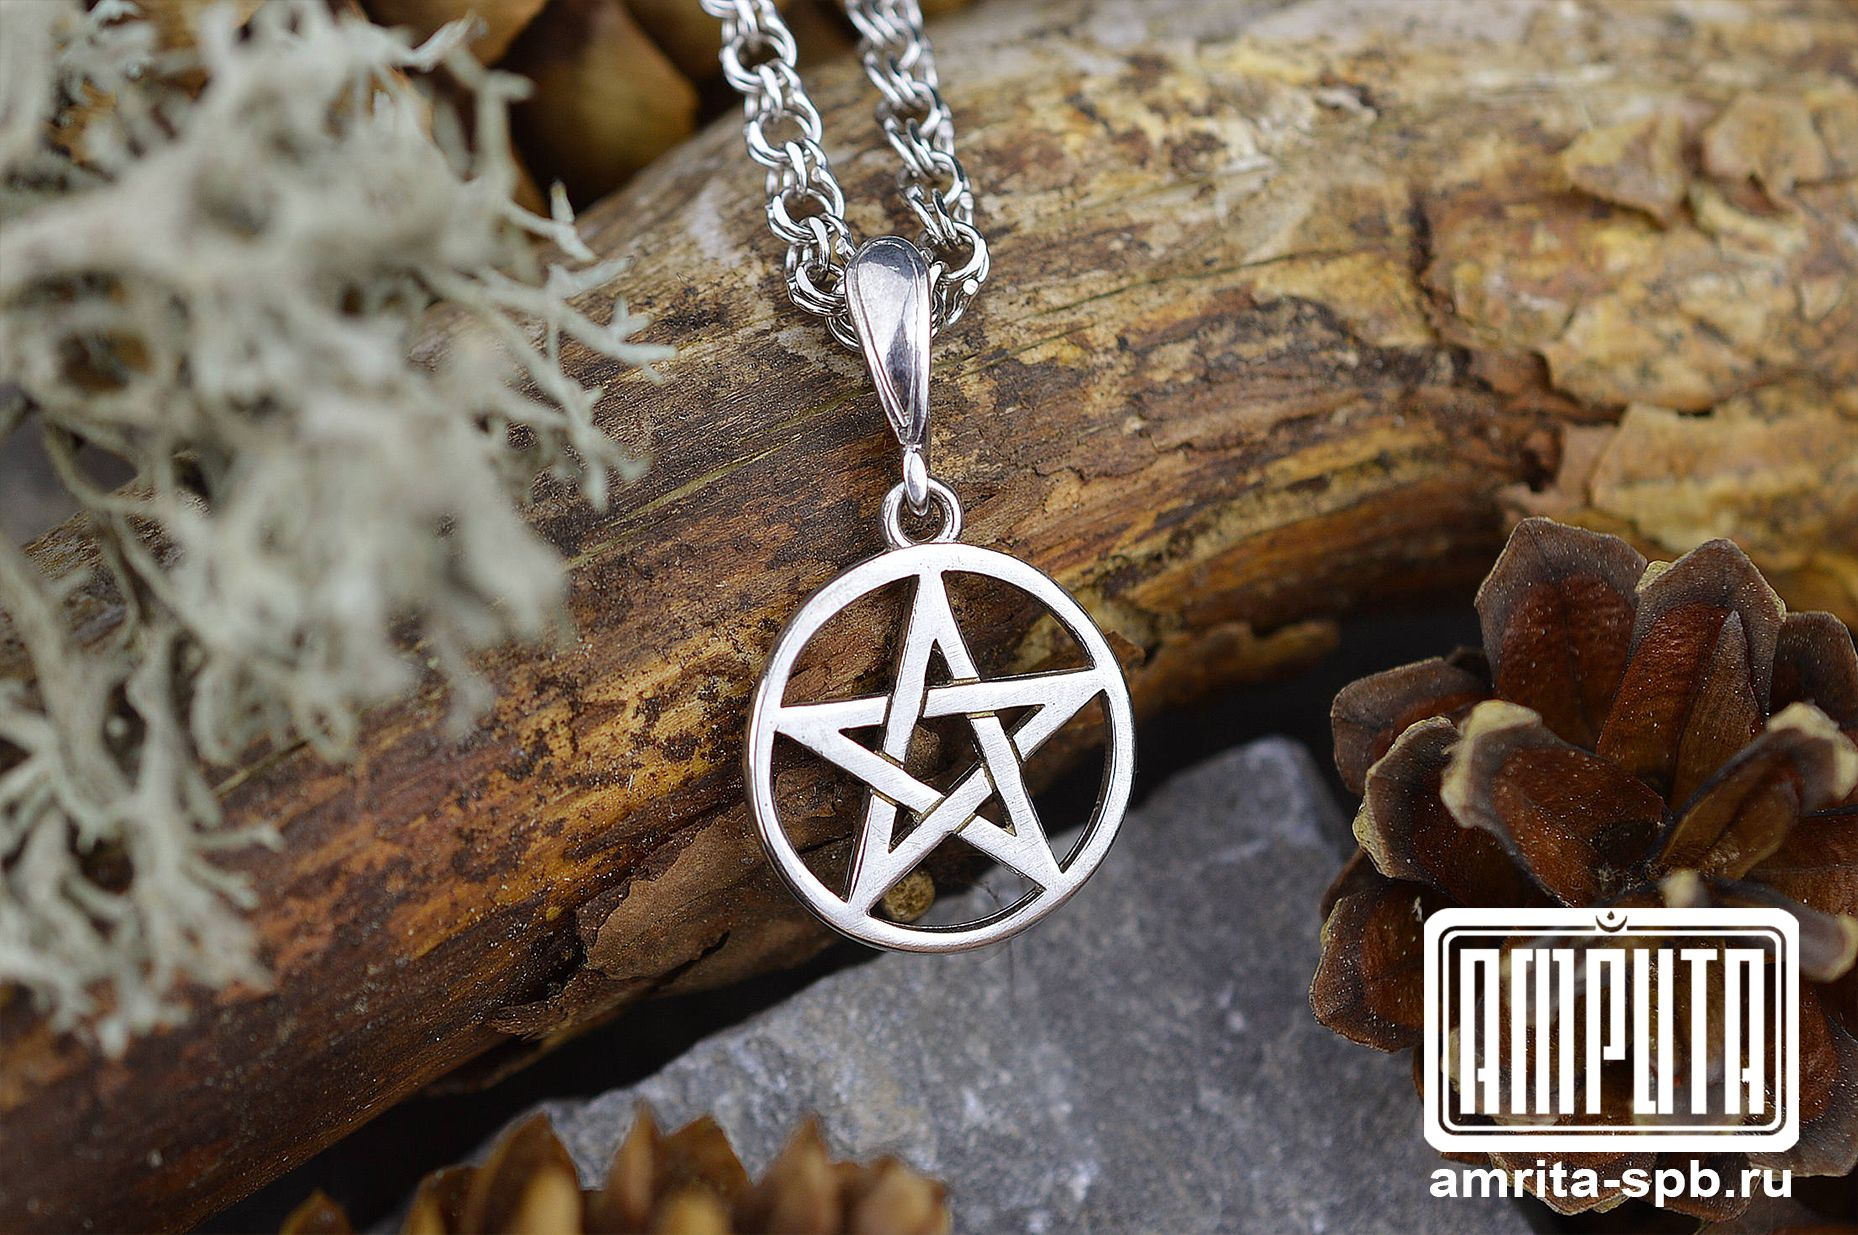 Pentagram pendant pentacle sterling silver pendant wicca ancient pentagram pendant pentacle sterling silver pendant ancient magic star symbol witch pendant aloadofball